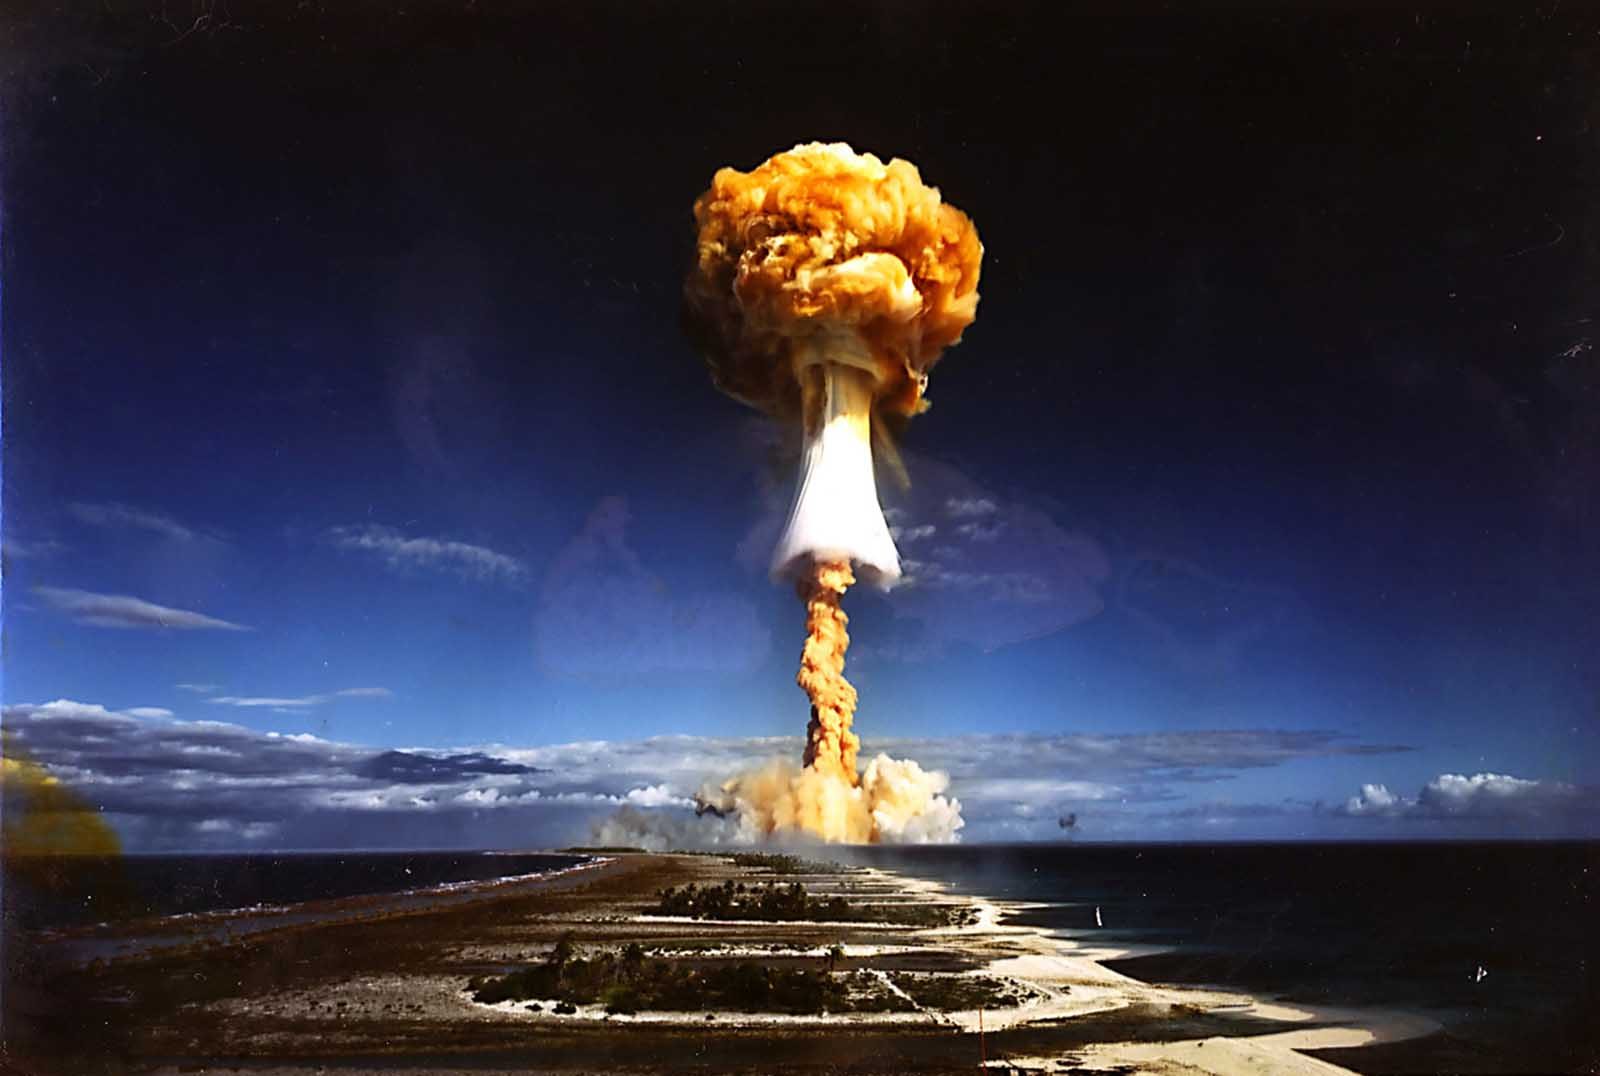 A photo of a nuclear bomb detonated by the French government at the Moruroa atoll, French Polynesia.